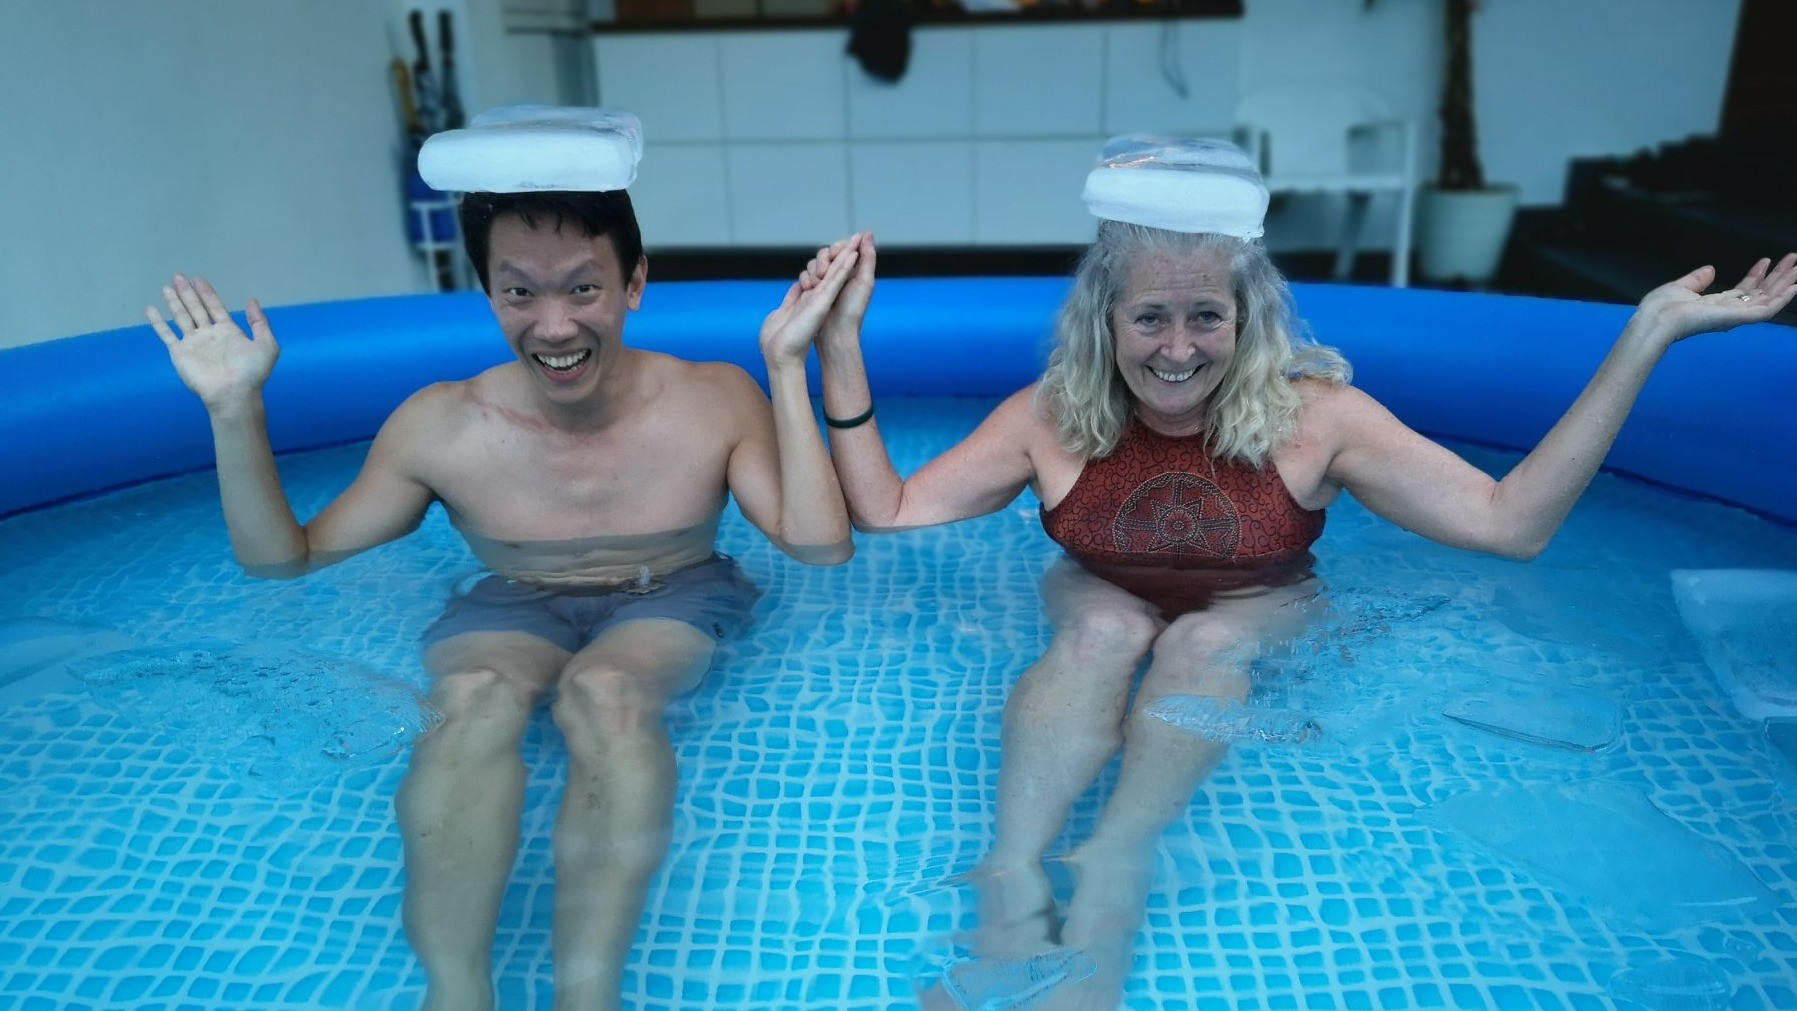 Image 16 of 16 - Experience the Wim Hof Method to get an impression of  at